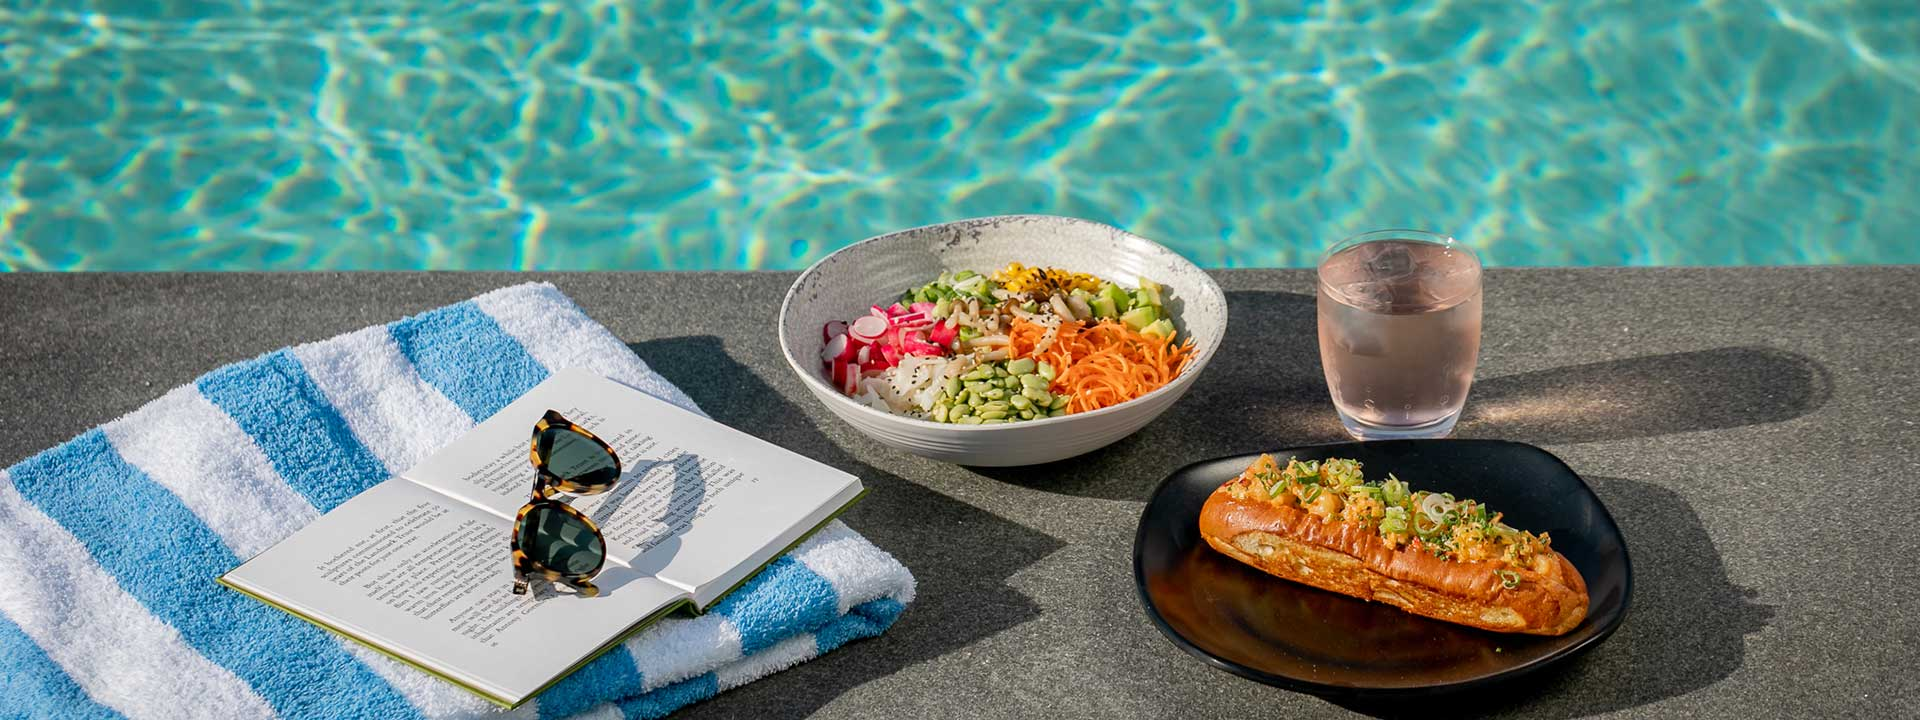 A hotdog, a salad and a chilled fruity drink at the edge of the pool